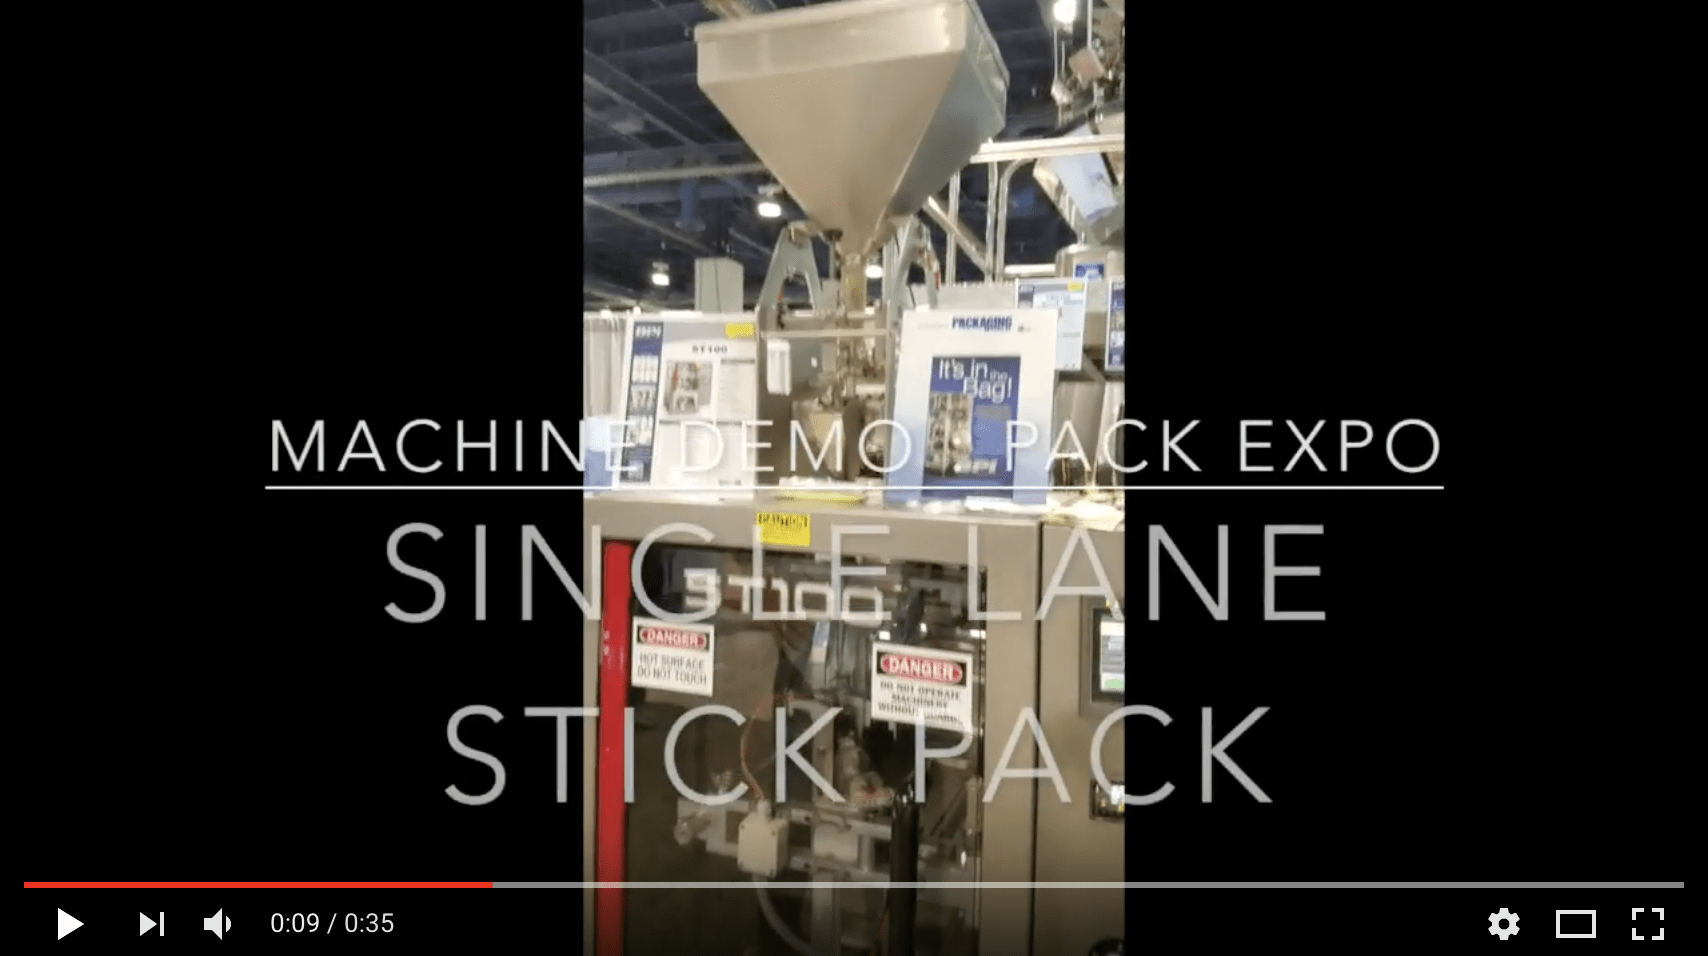 stick pack packaging video